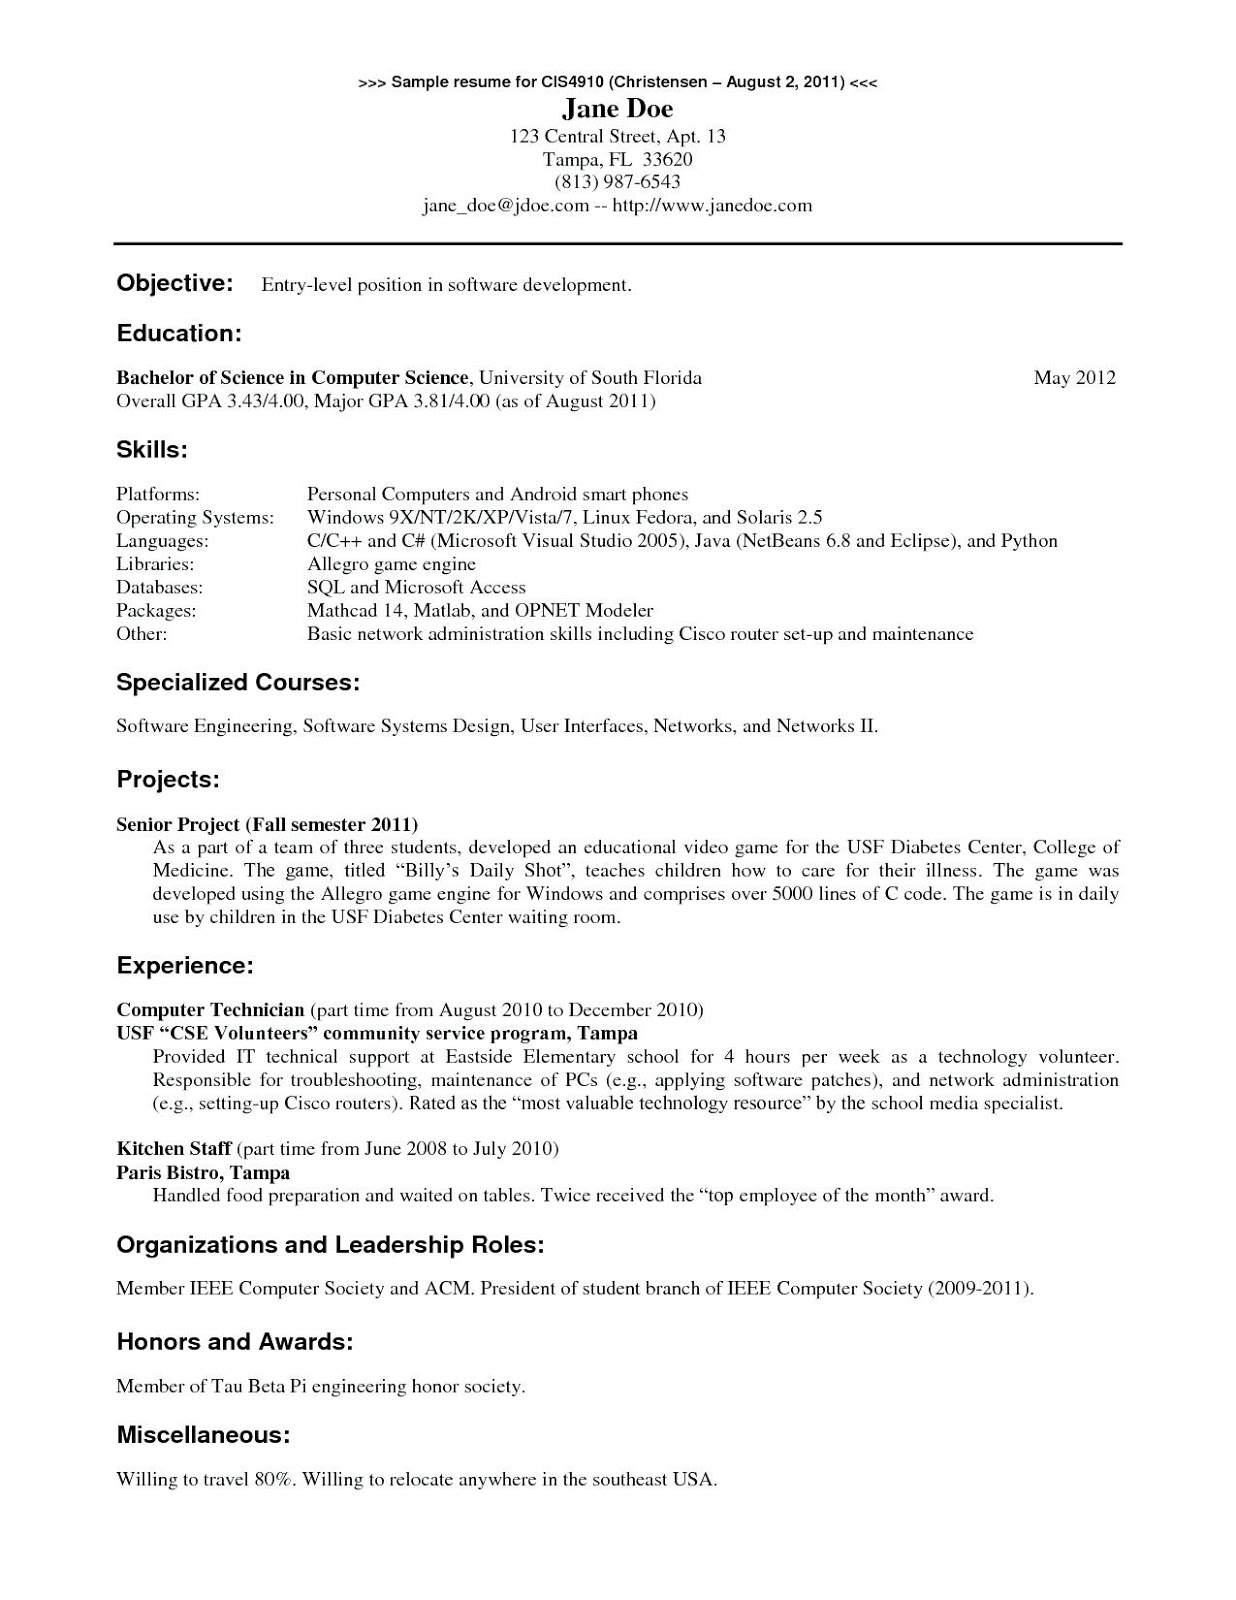 food service resume objective examples, food service supervisor resume objective examples 2019 , resume objective examples for food service , general resume objective examples food service,